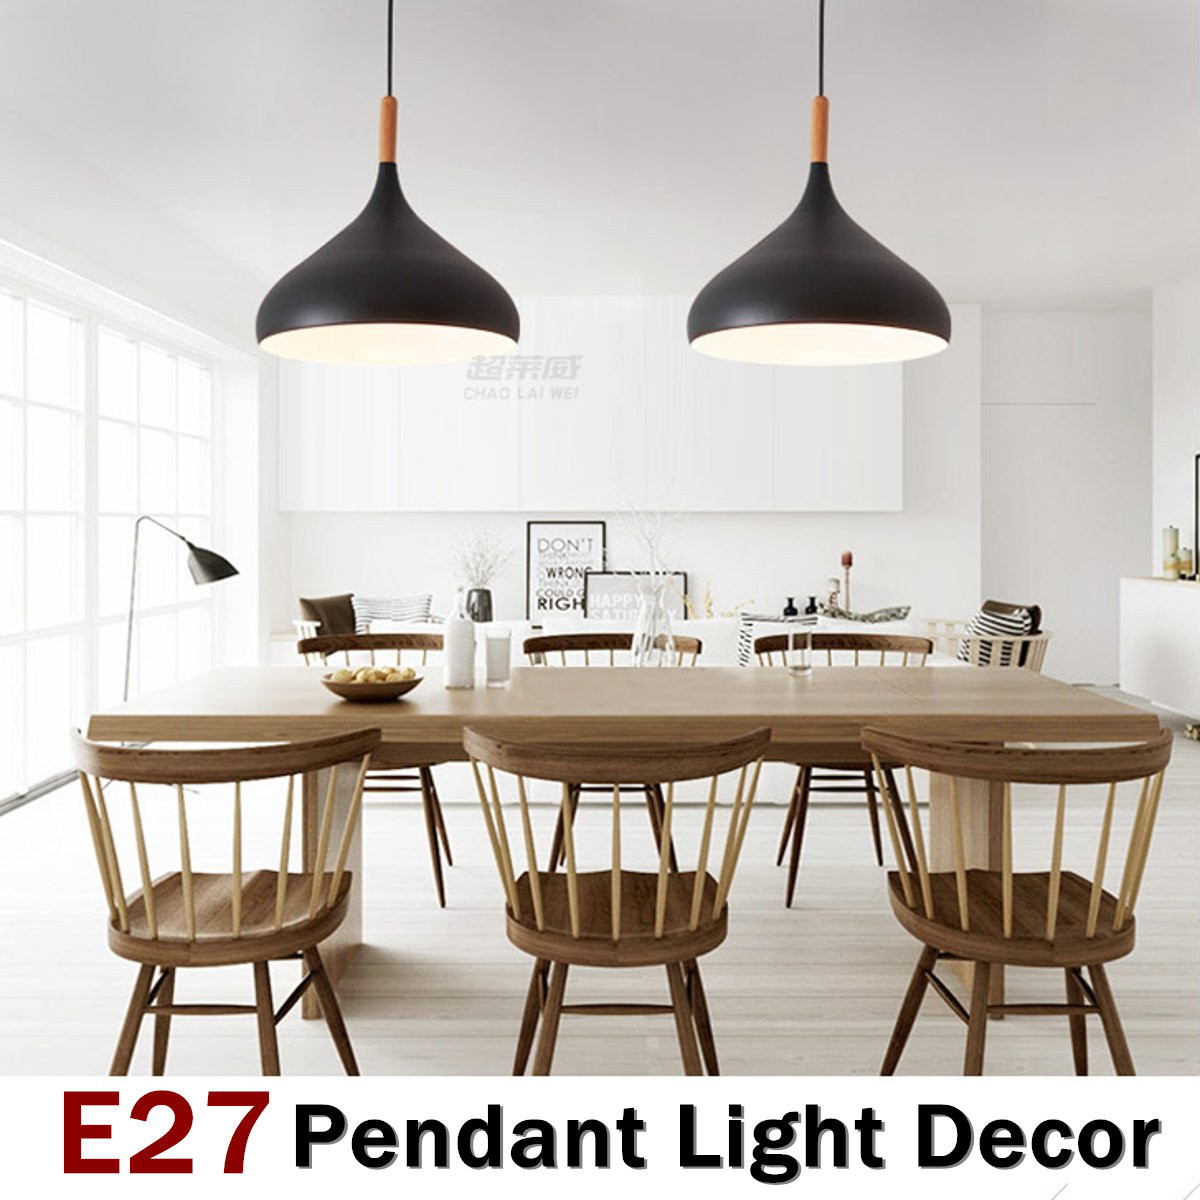 Modern Pendant Lights Kitchen Home Living Room Bedroom Dining Room Hanging Pendant Lamps Indoor Lightings BlackModern Pendant Lights Kitchen Home Living Room Bedroom Dining Room Hanging Pendant Lamps Indoor Lightings Black